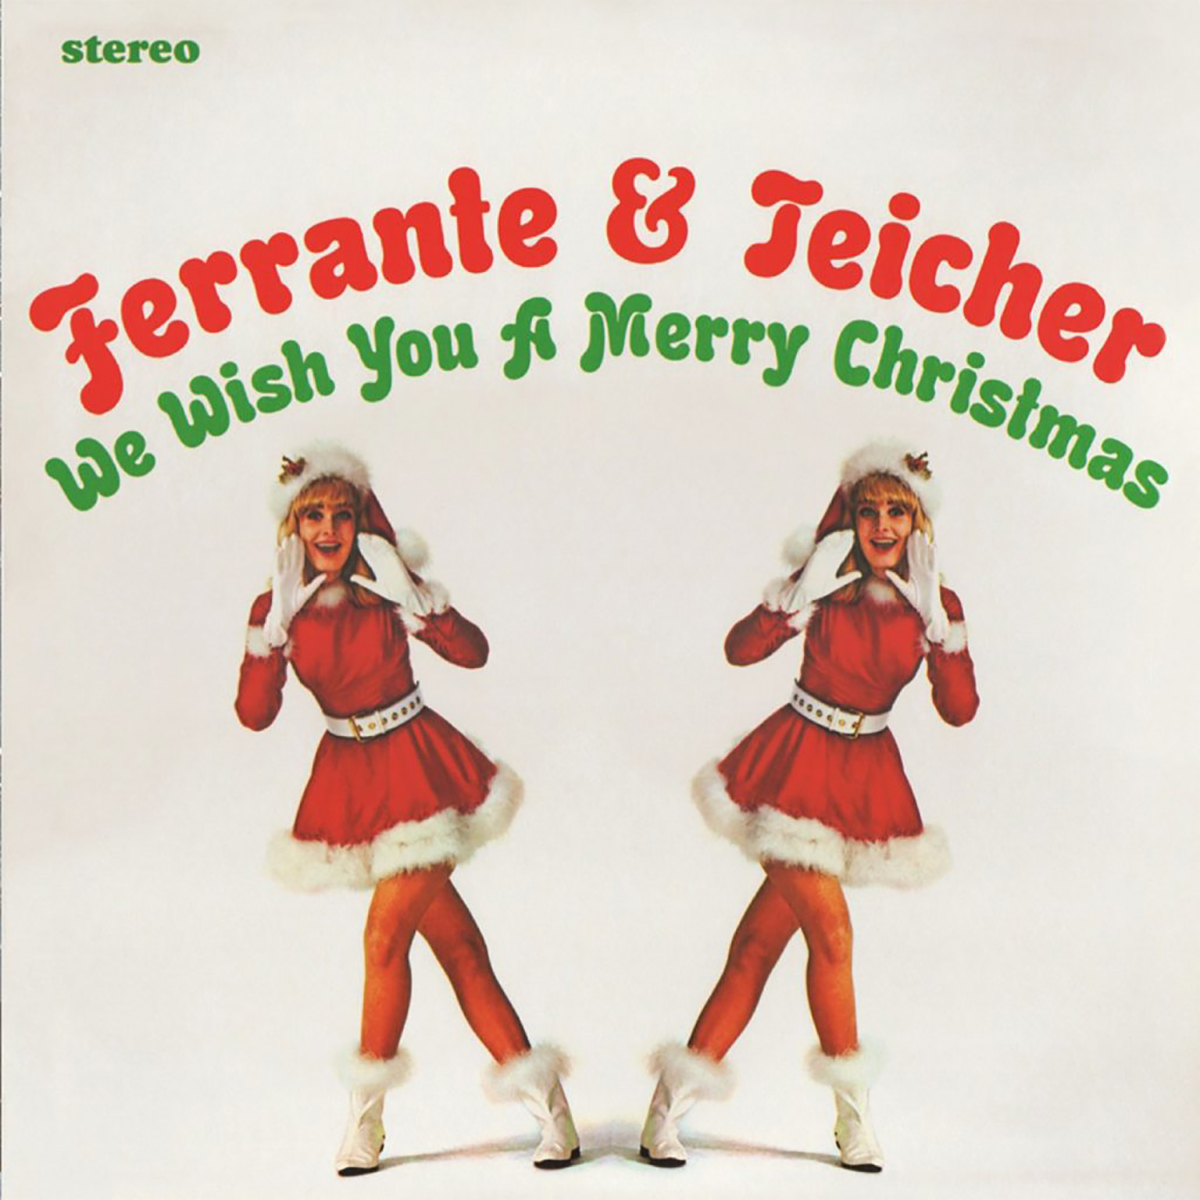 FERRANTE & TEICHER - WE WISH YOU A MERRY CHRISTMAS (180 GRAM AUDIOPHILE VINYL/LIMITED ANNIVERSARY EDITION) LP